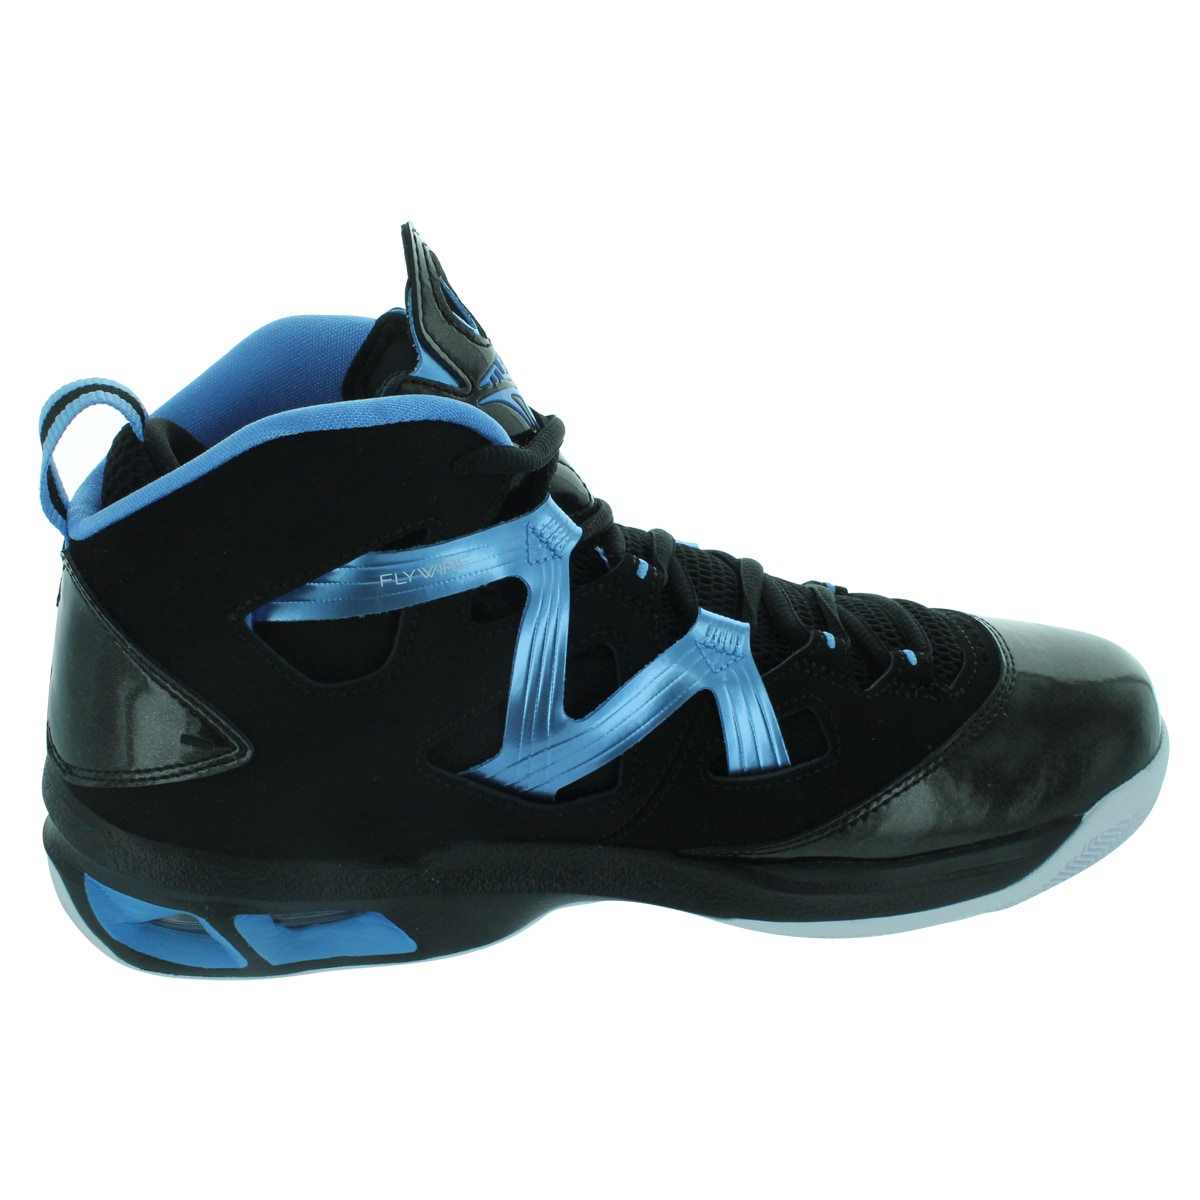 finest selection adfe2 2a4f7 Shop Nike Jordan Melo M9 Basketball Shoe - Free Shipping Today - Overstock  - 12318778